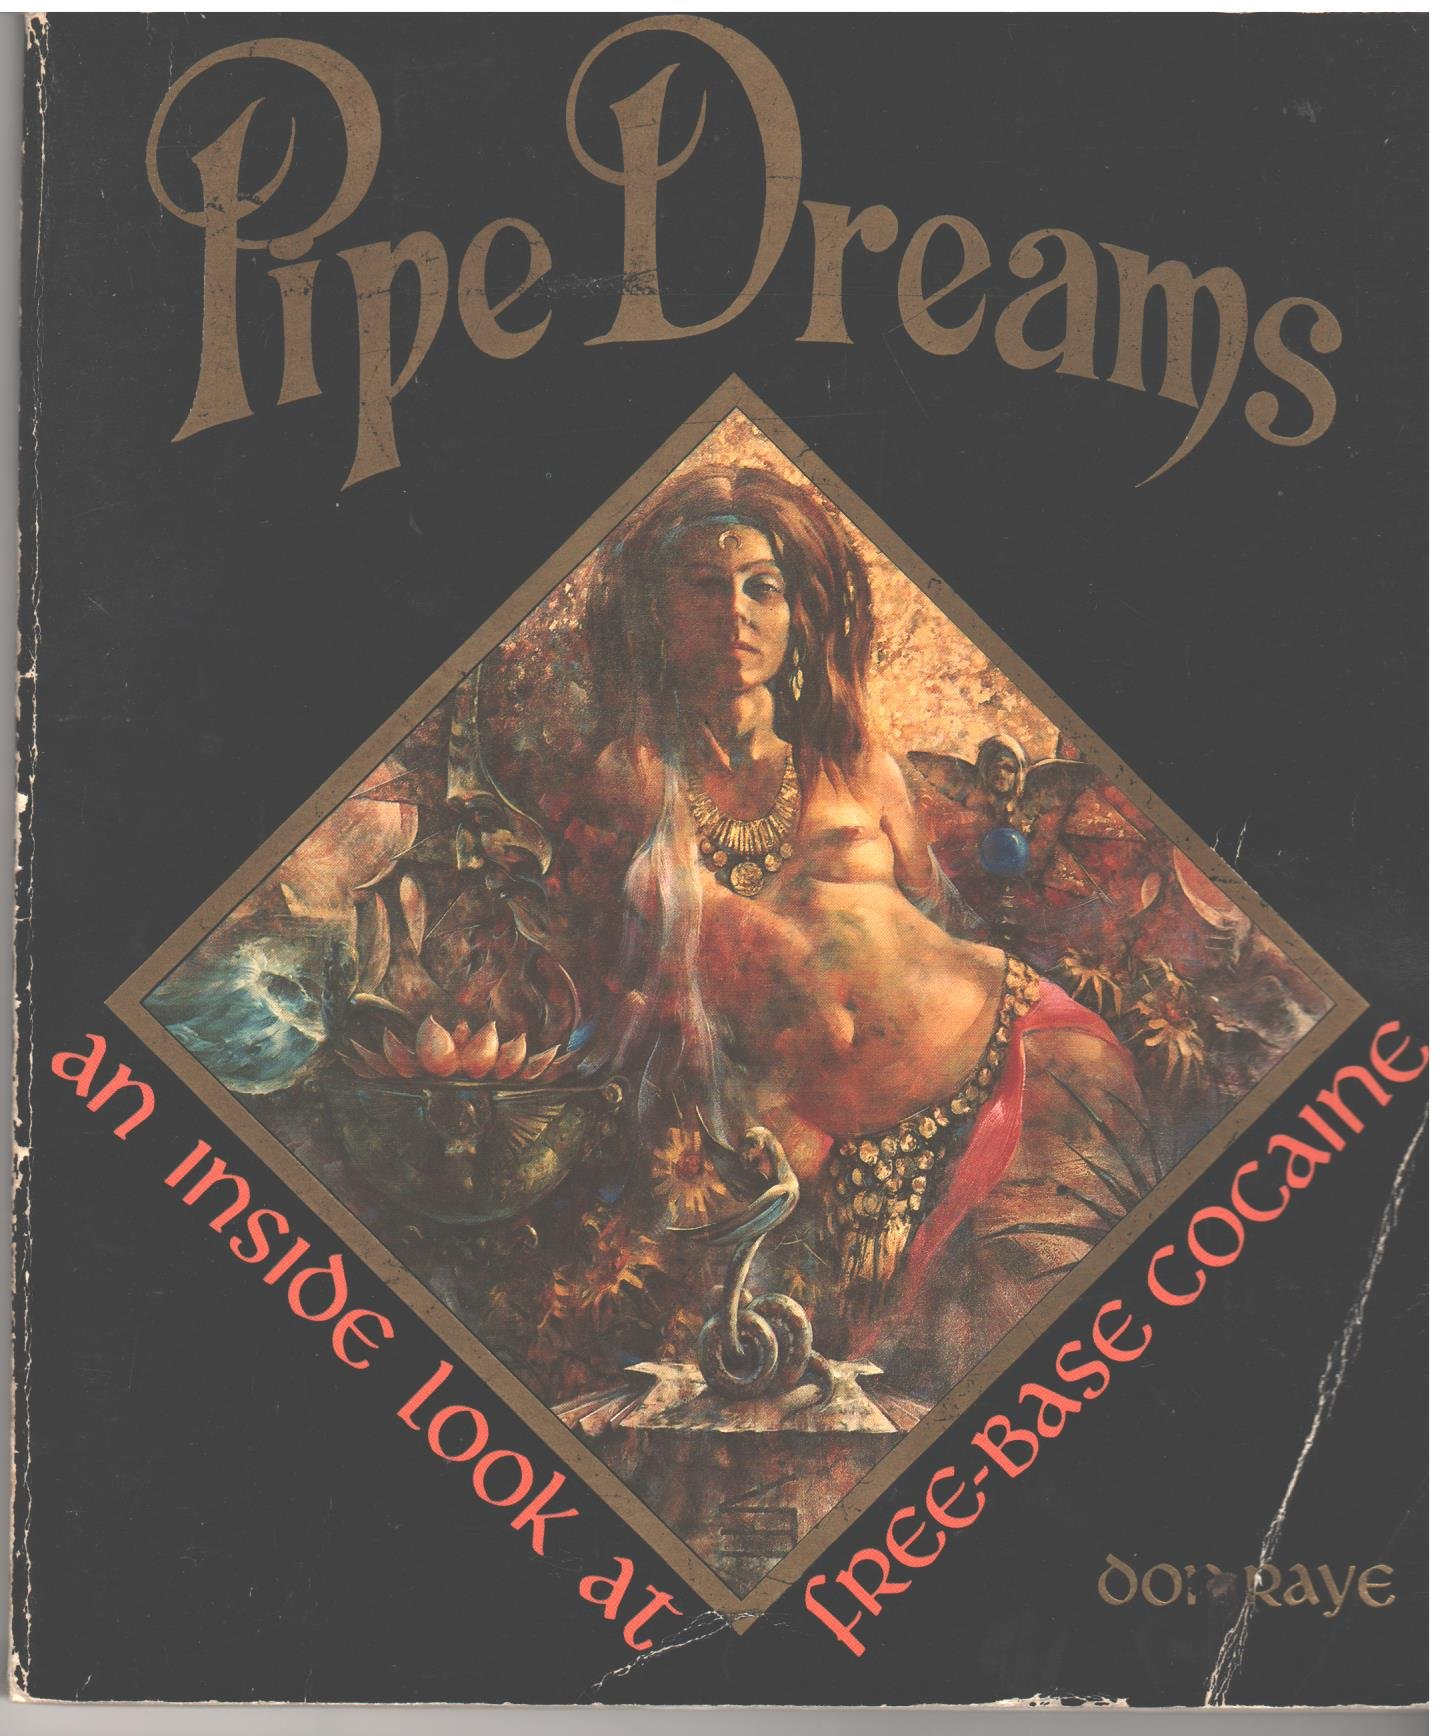 Pipe dreams: An inside look at free-base cocaine, Don Raye